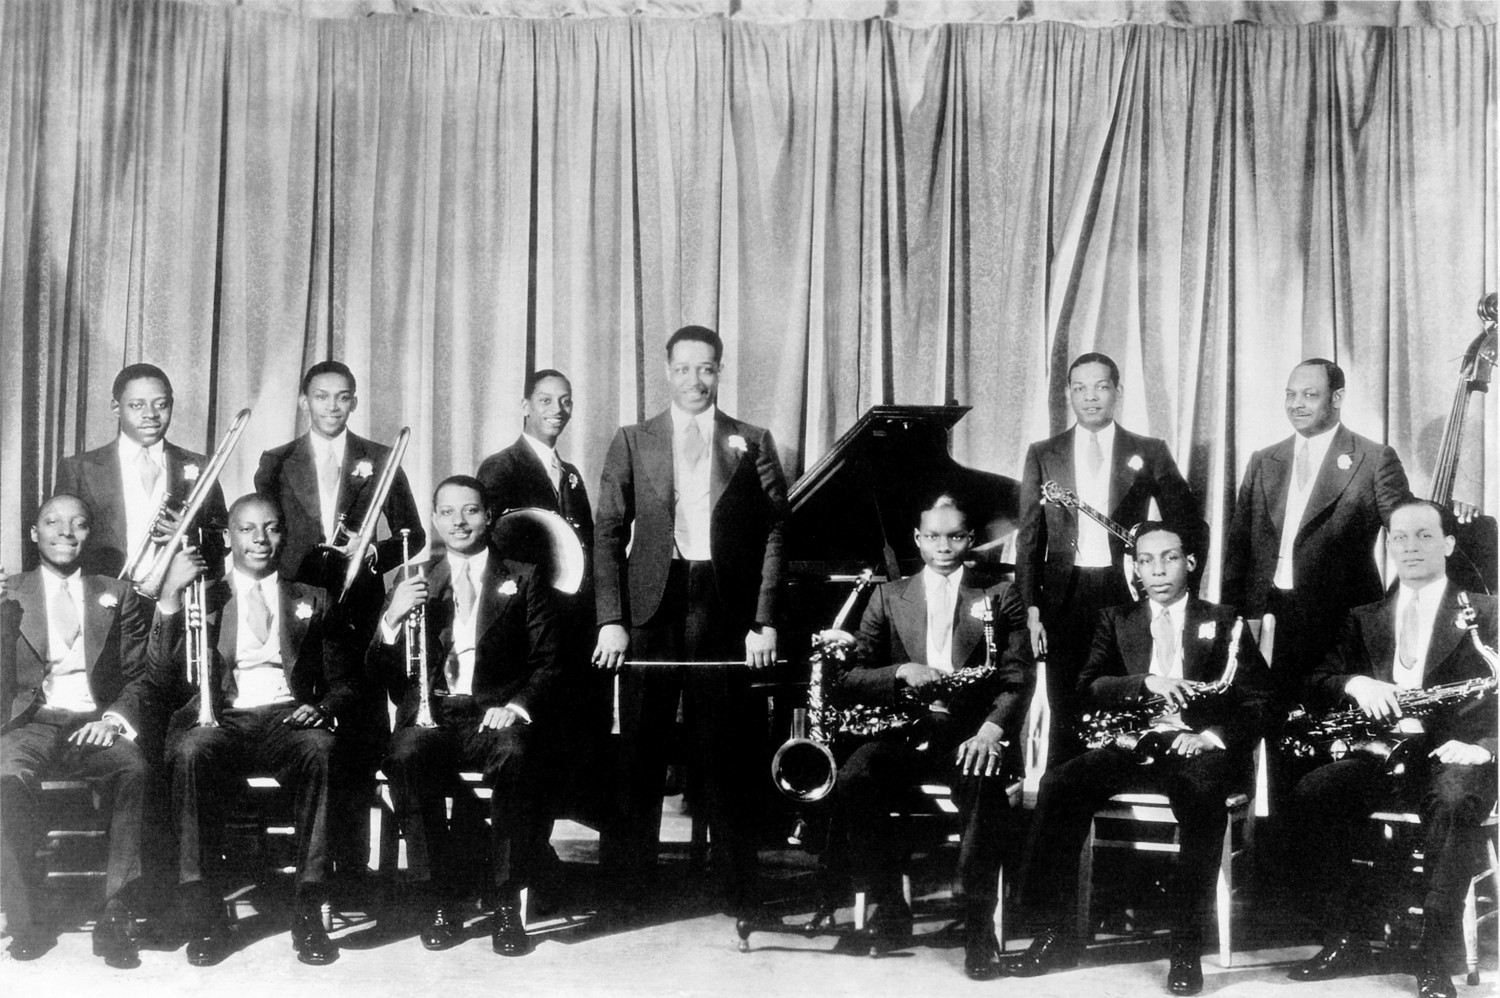 p. 100, Cotton Club, 1929, X, Coll. Philippe Baudoin